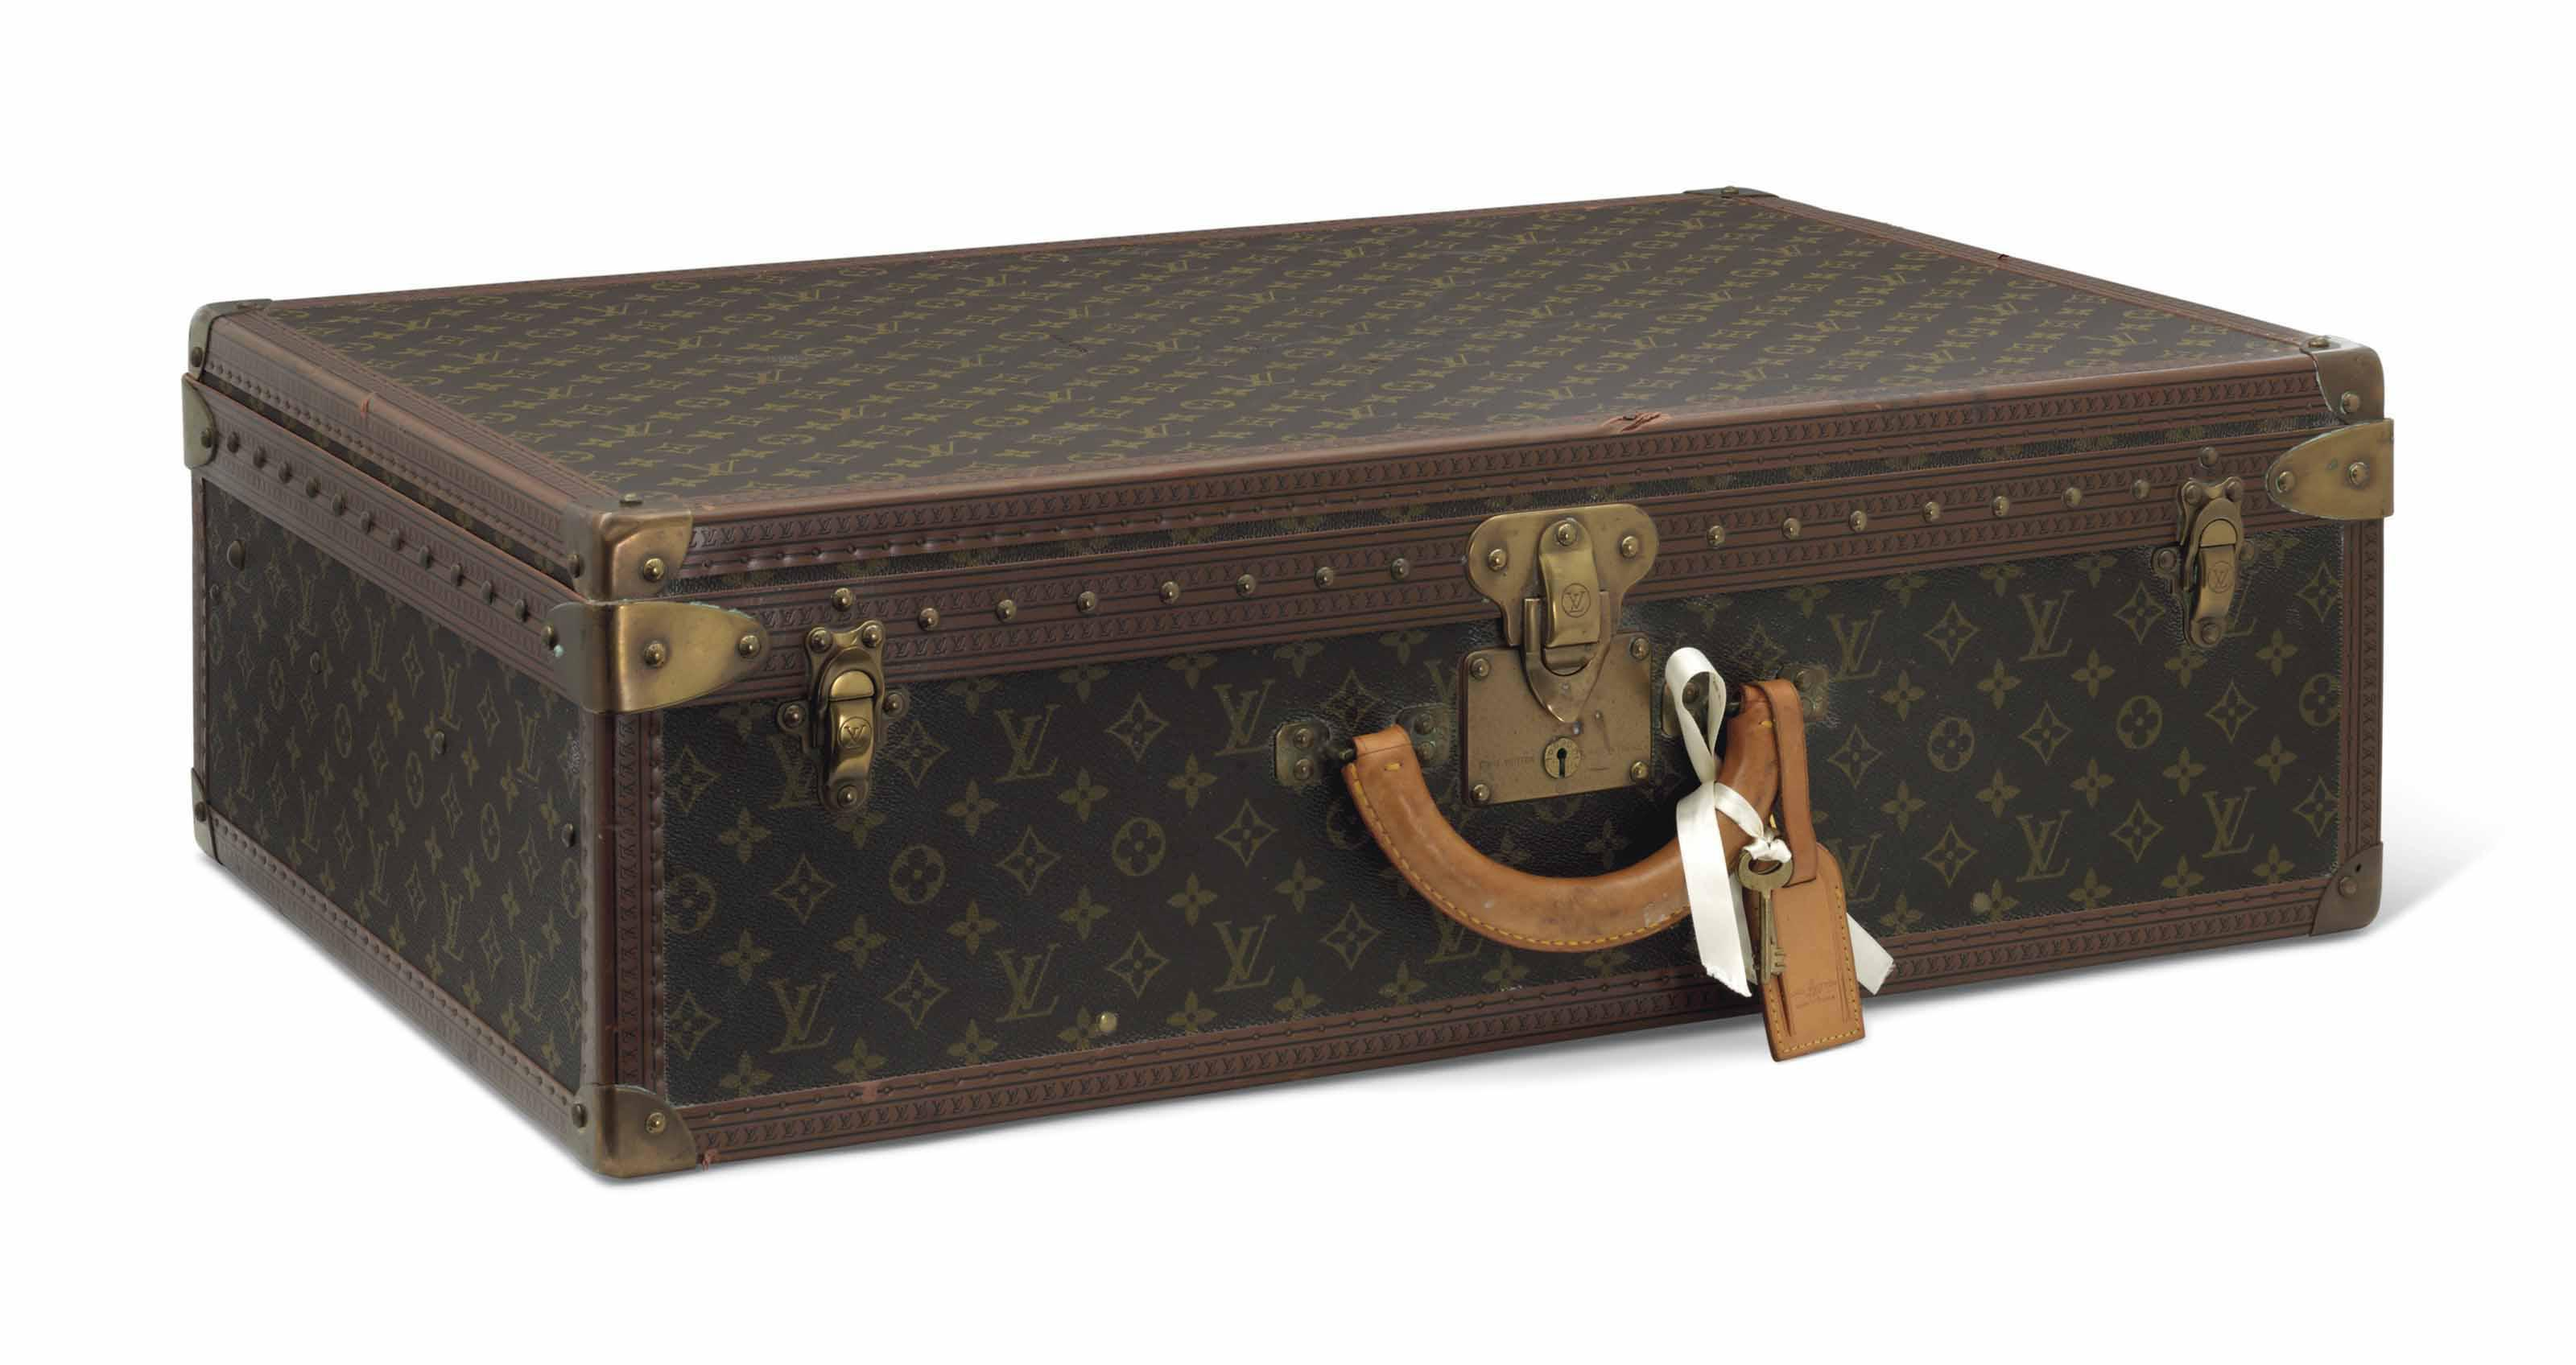 bf76a6e5289c Auction results for Louis Vuitton Luggage